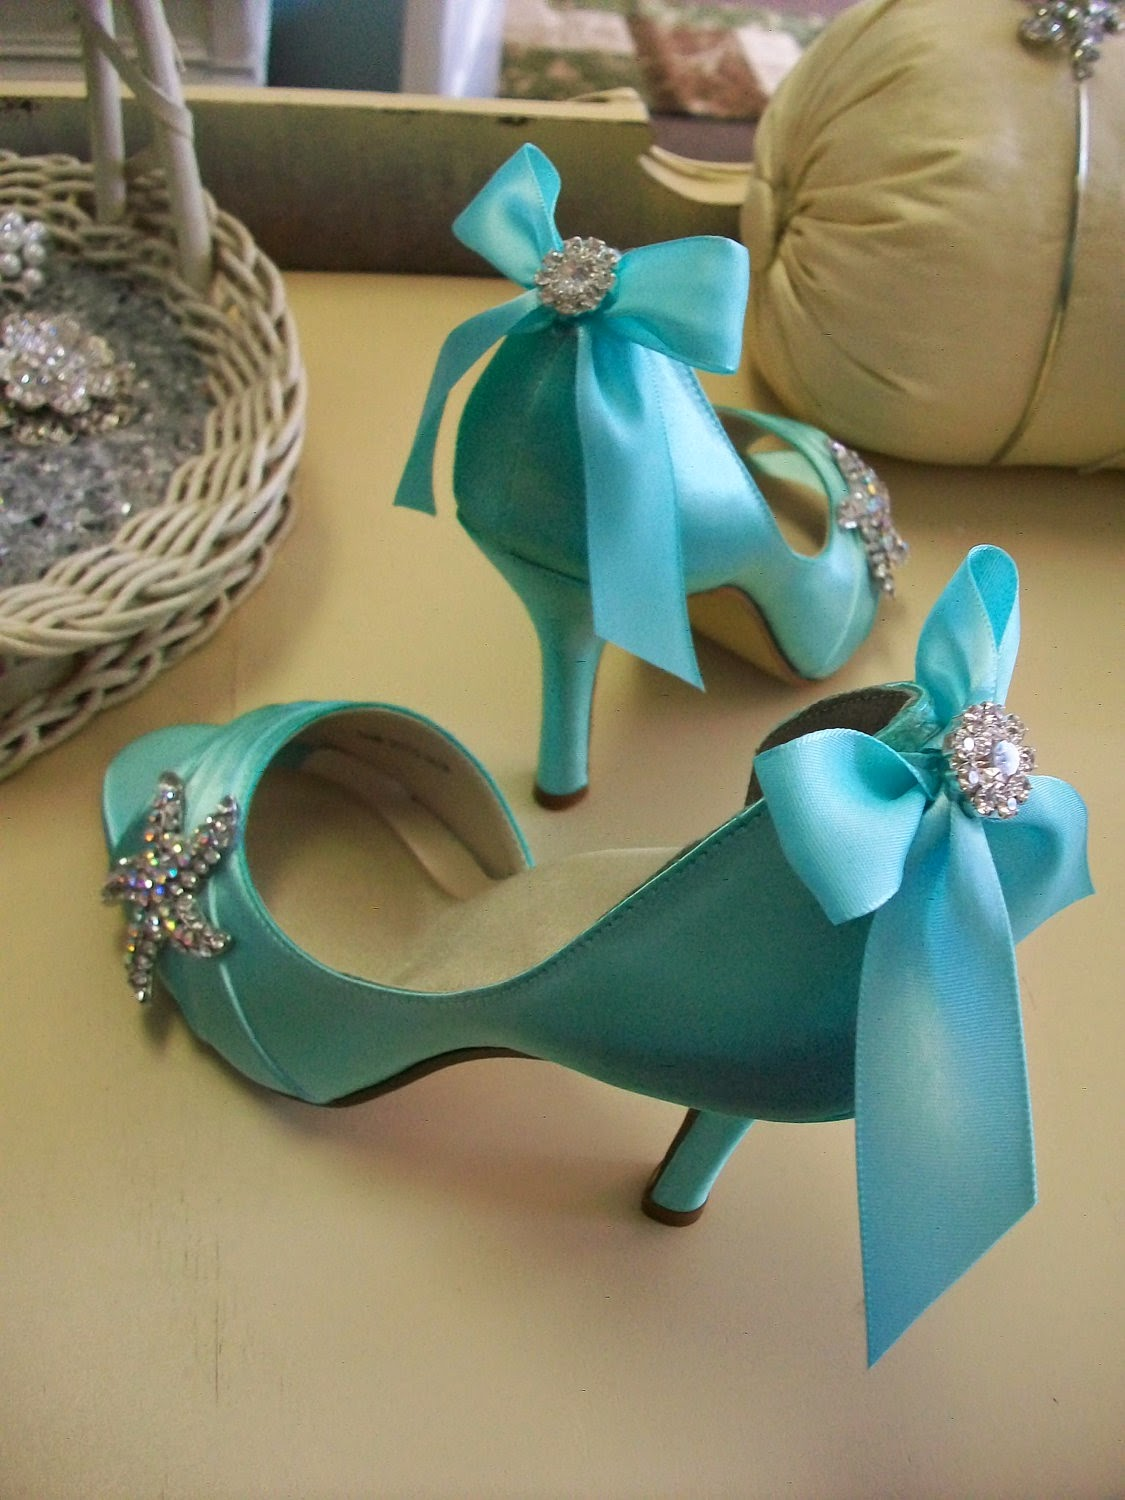 wedding shoes image wedding shoes picture wedding shoes design wedding shoes ideas